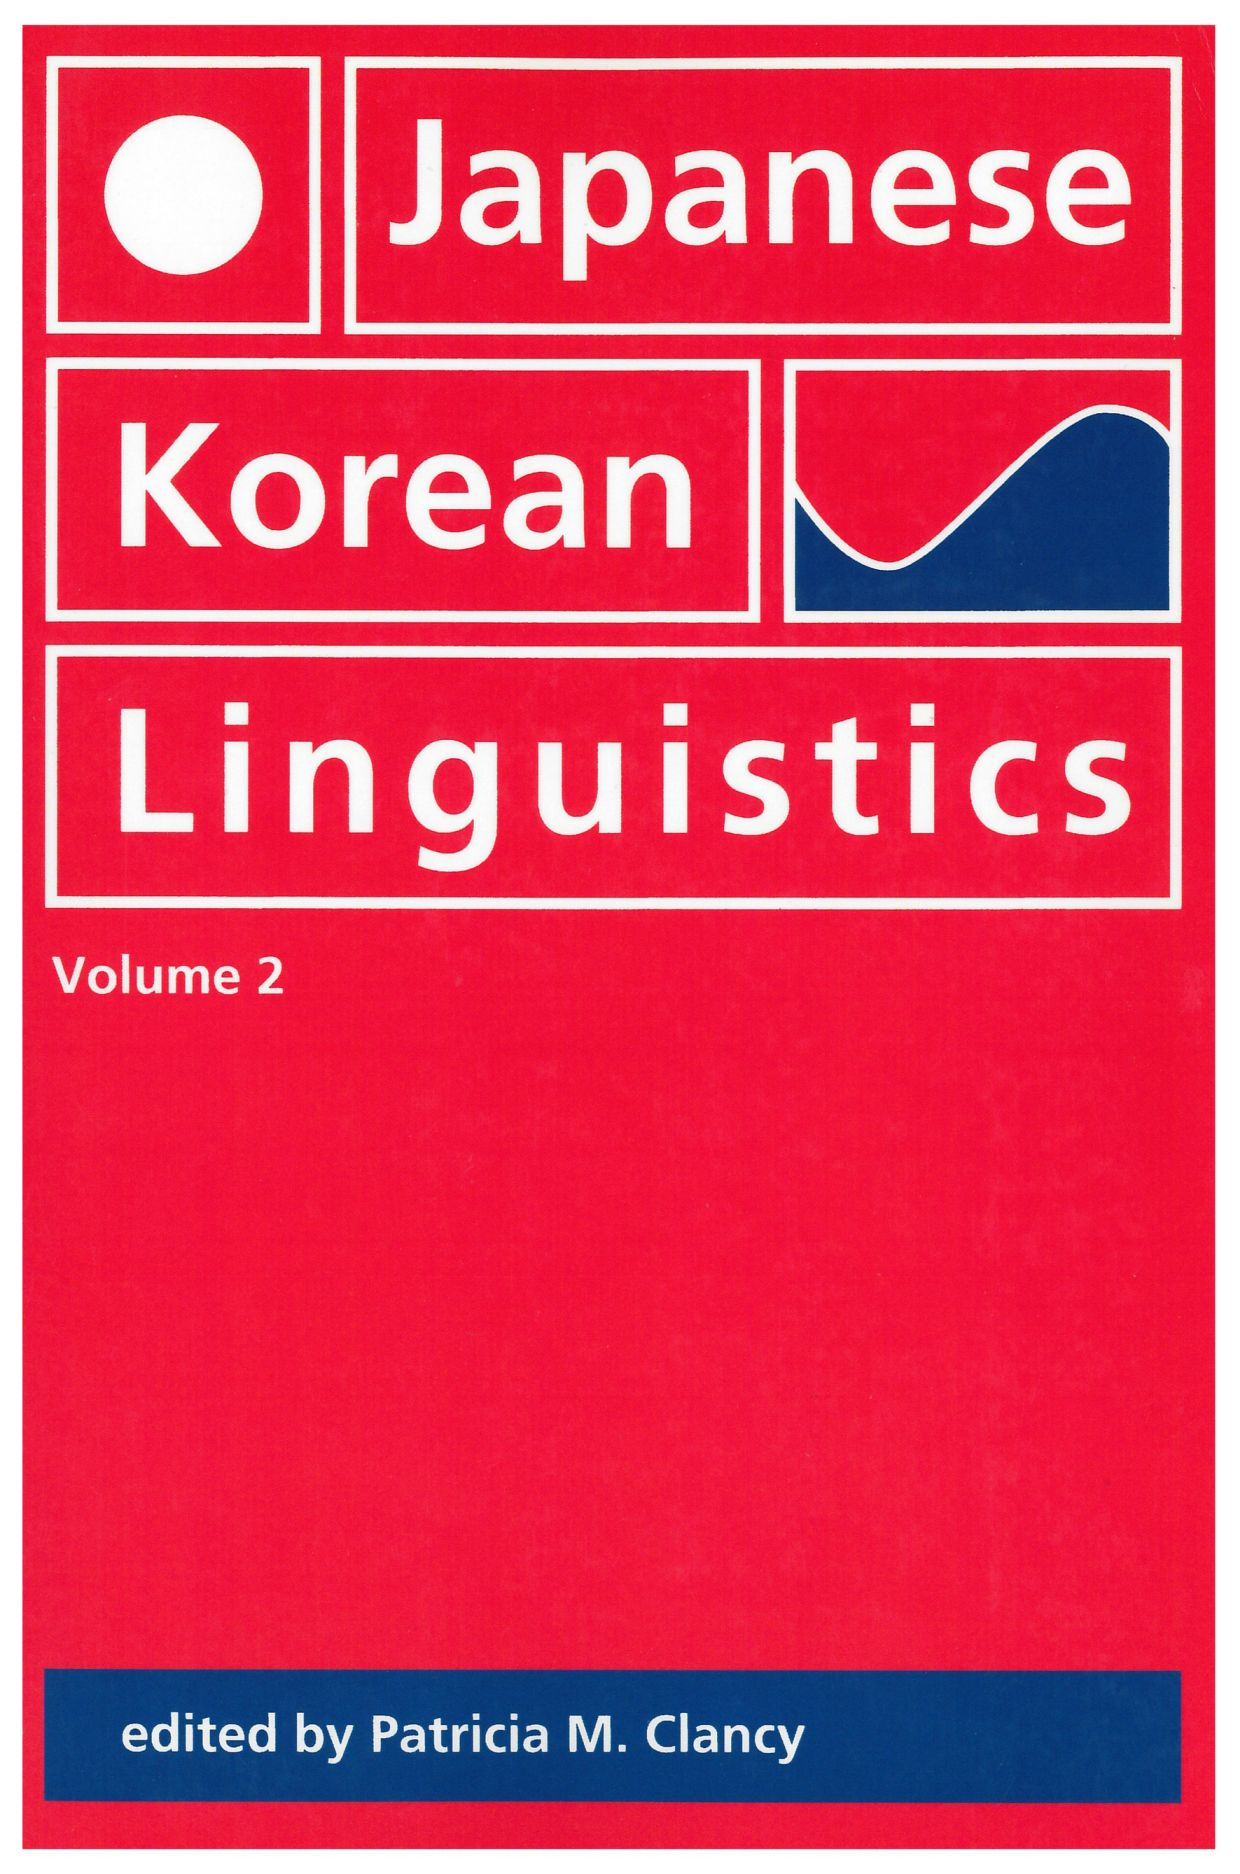 Japanese/Korean Linguistics, Volume 2